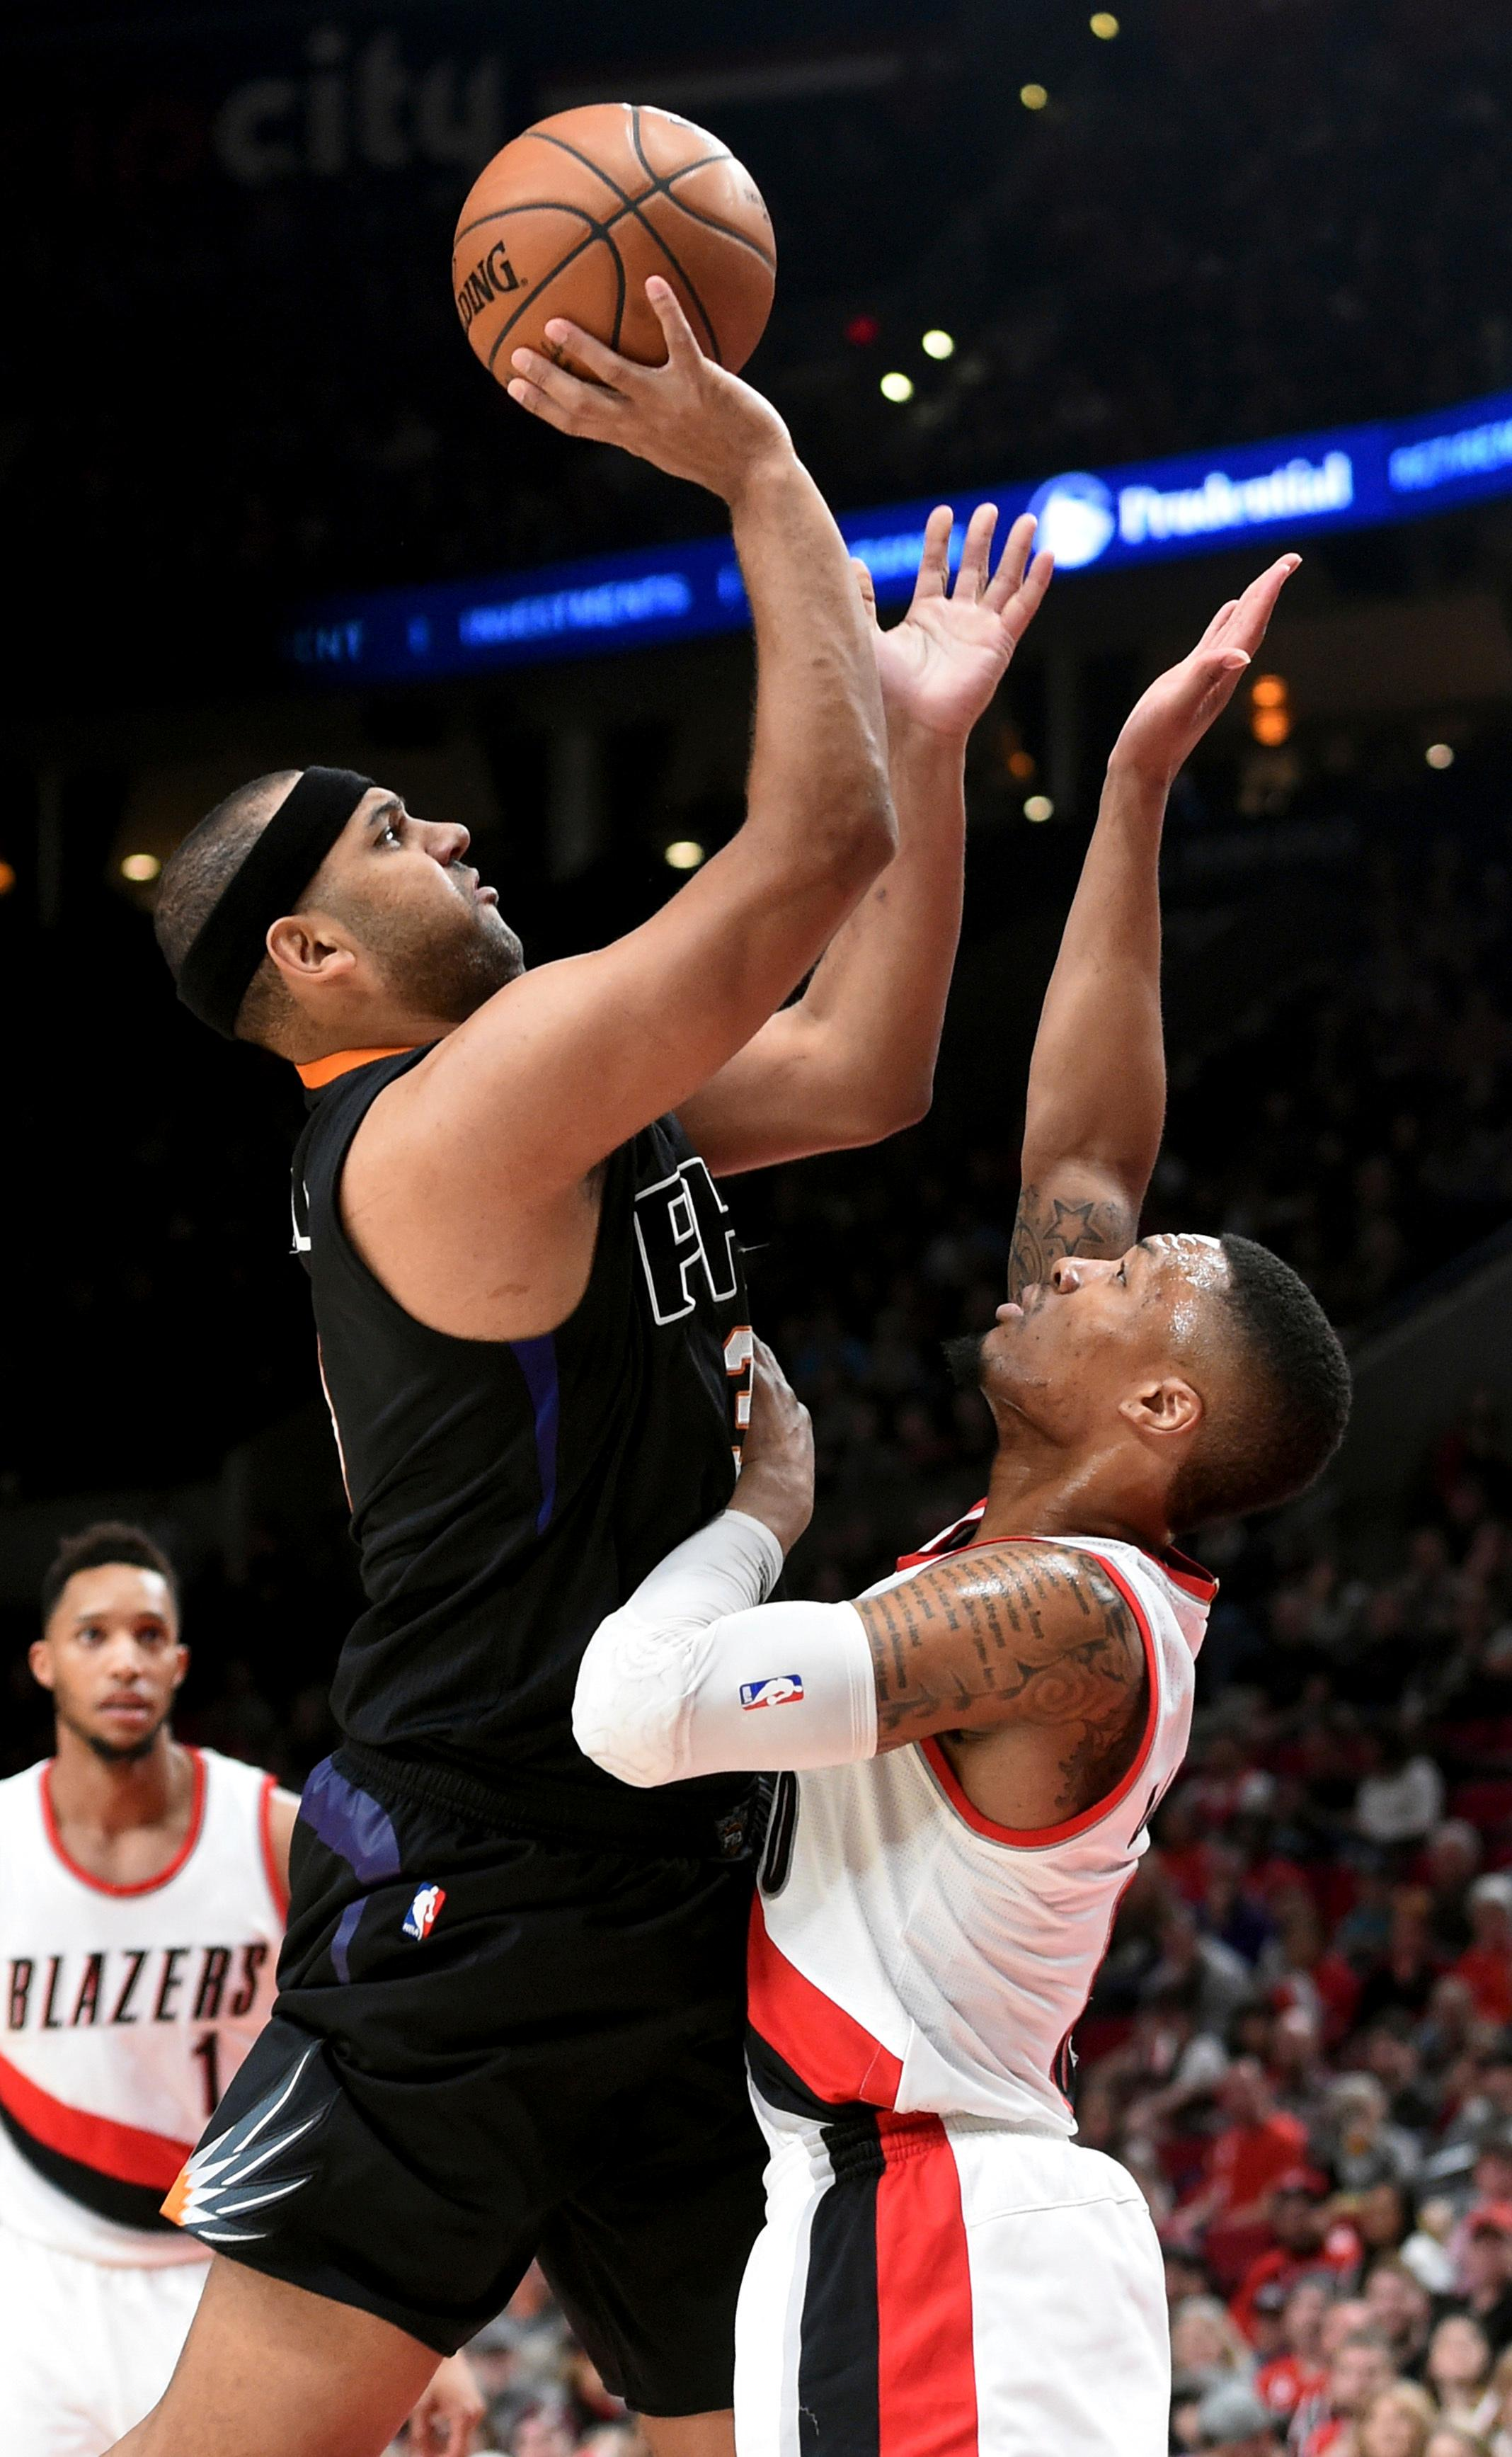 Phoenix Suns forward Jared Dudley shoots over Portland Trail Blazers guard Damian Lillard during the first quarter of an NBA basketball game in Portland, Ore., Saturday, April 1, 2017. (AP Photo/Steve Dykes)